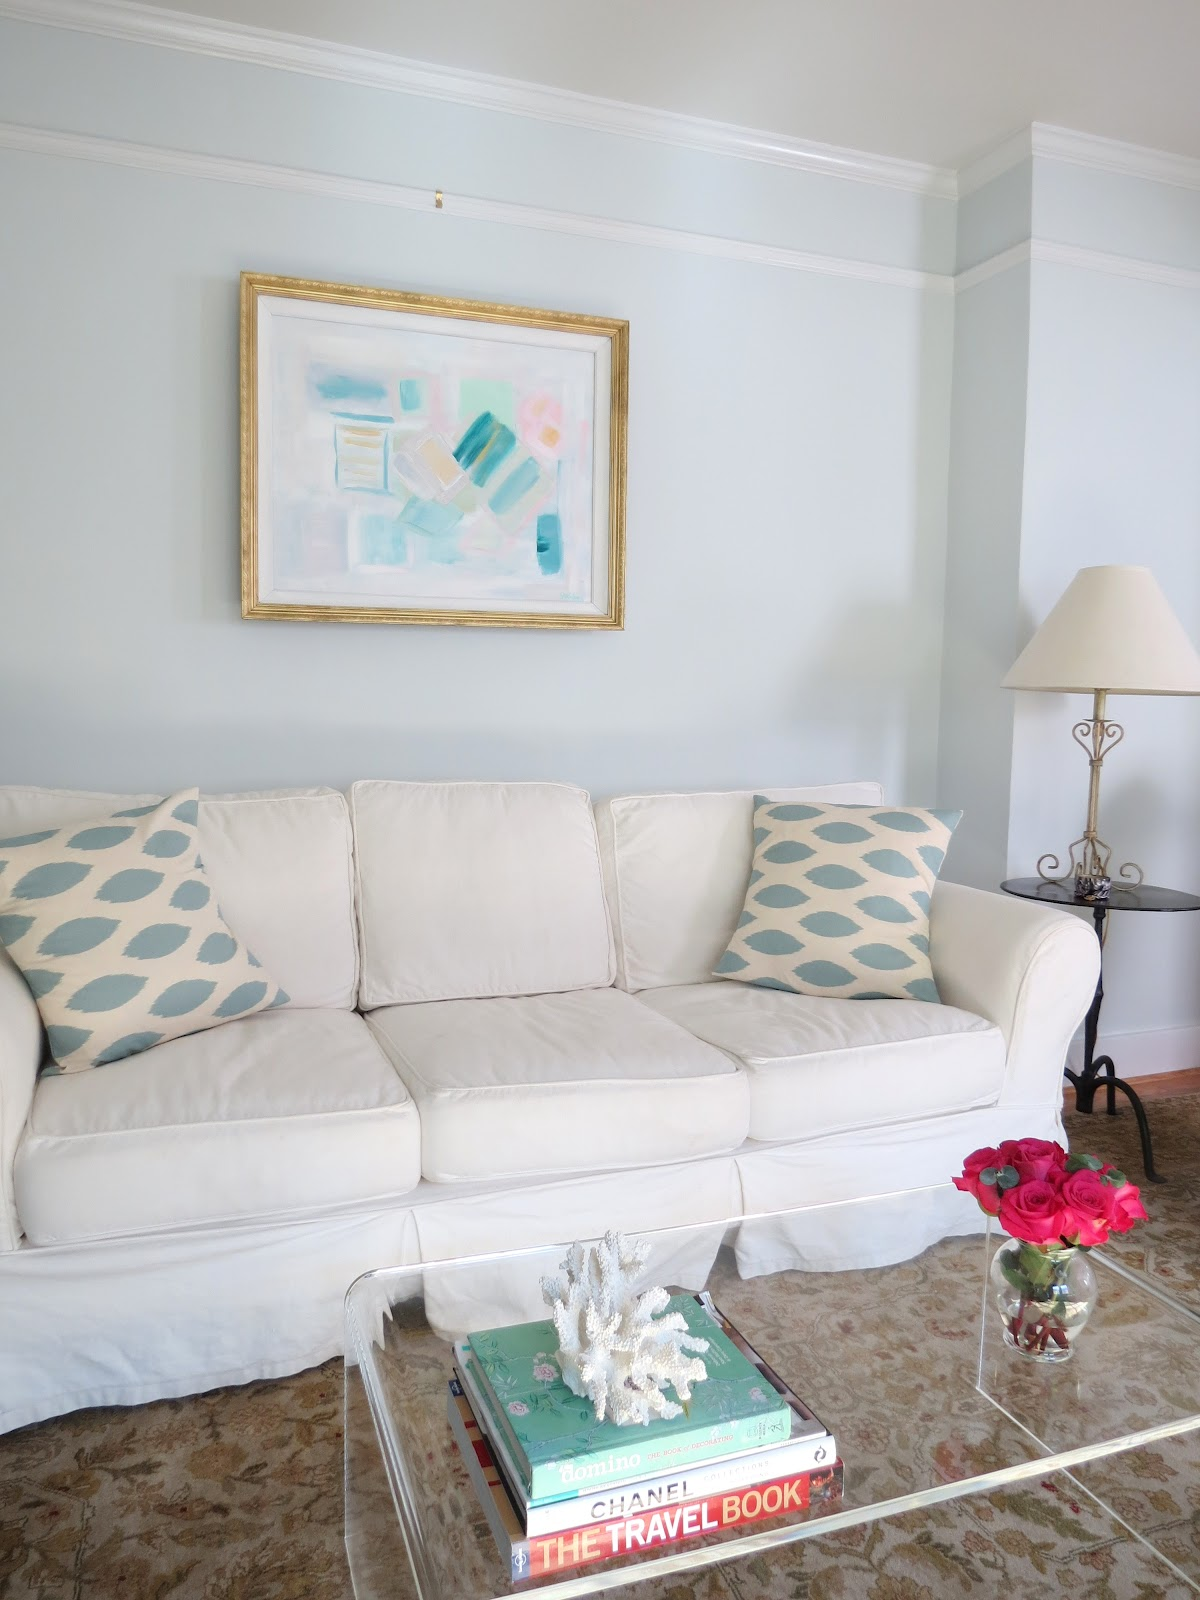 Jll design june 2012 - Wall paint colors for living room ...